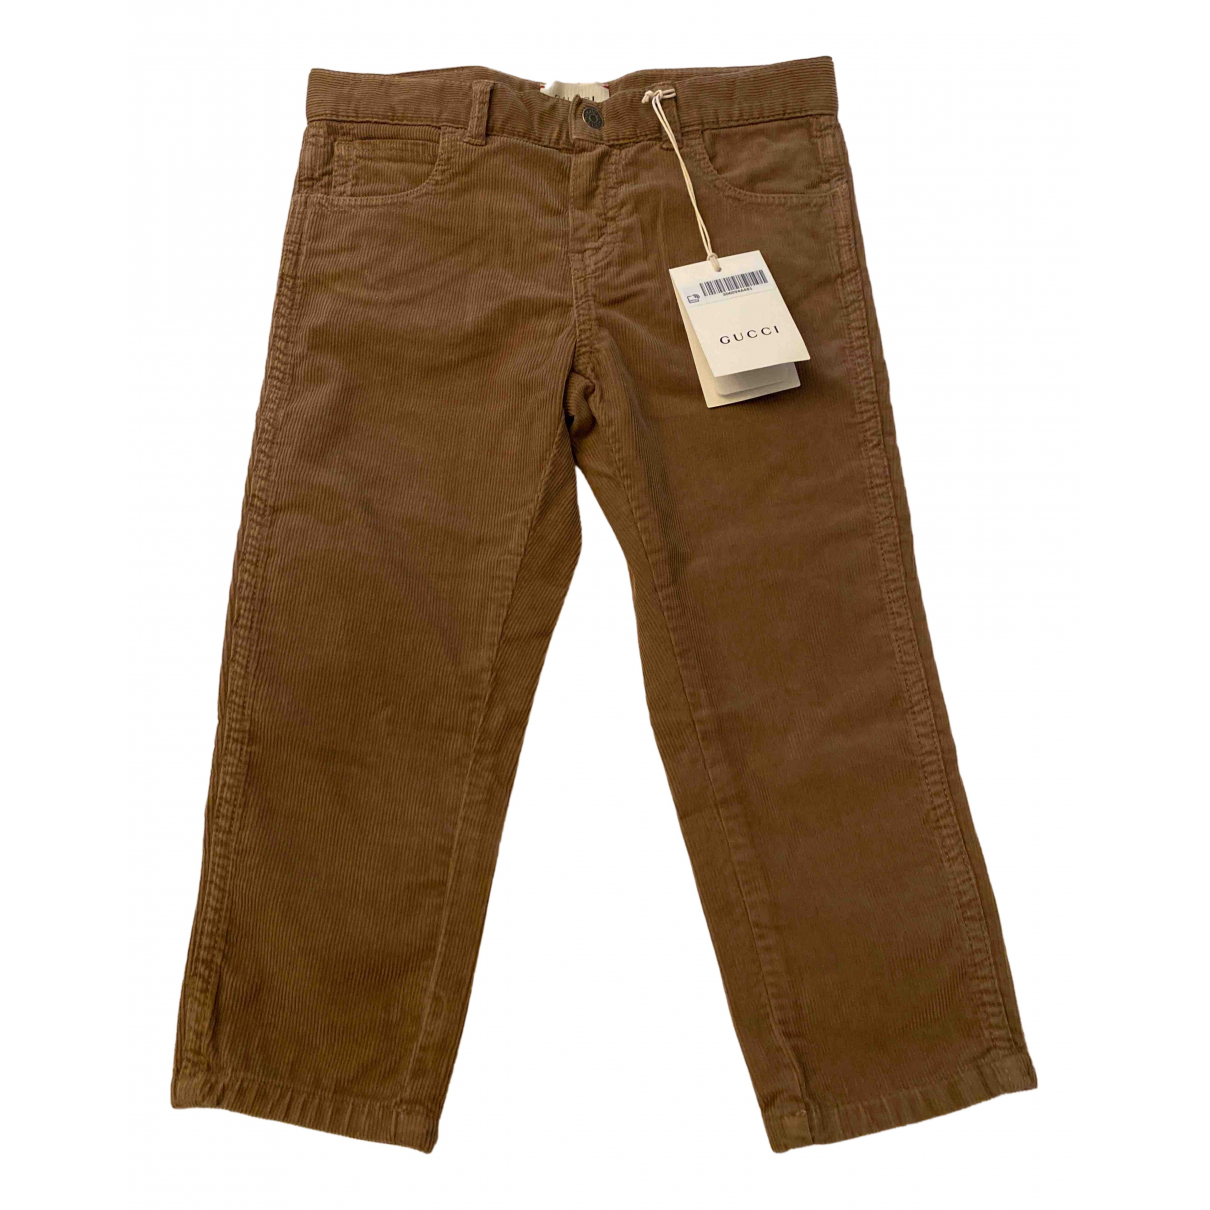 Gucci N Brown Cotton Trousers for Kids 3 years - up to 98cm FR